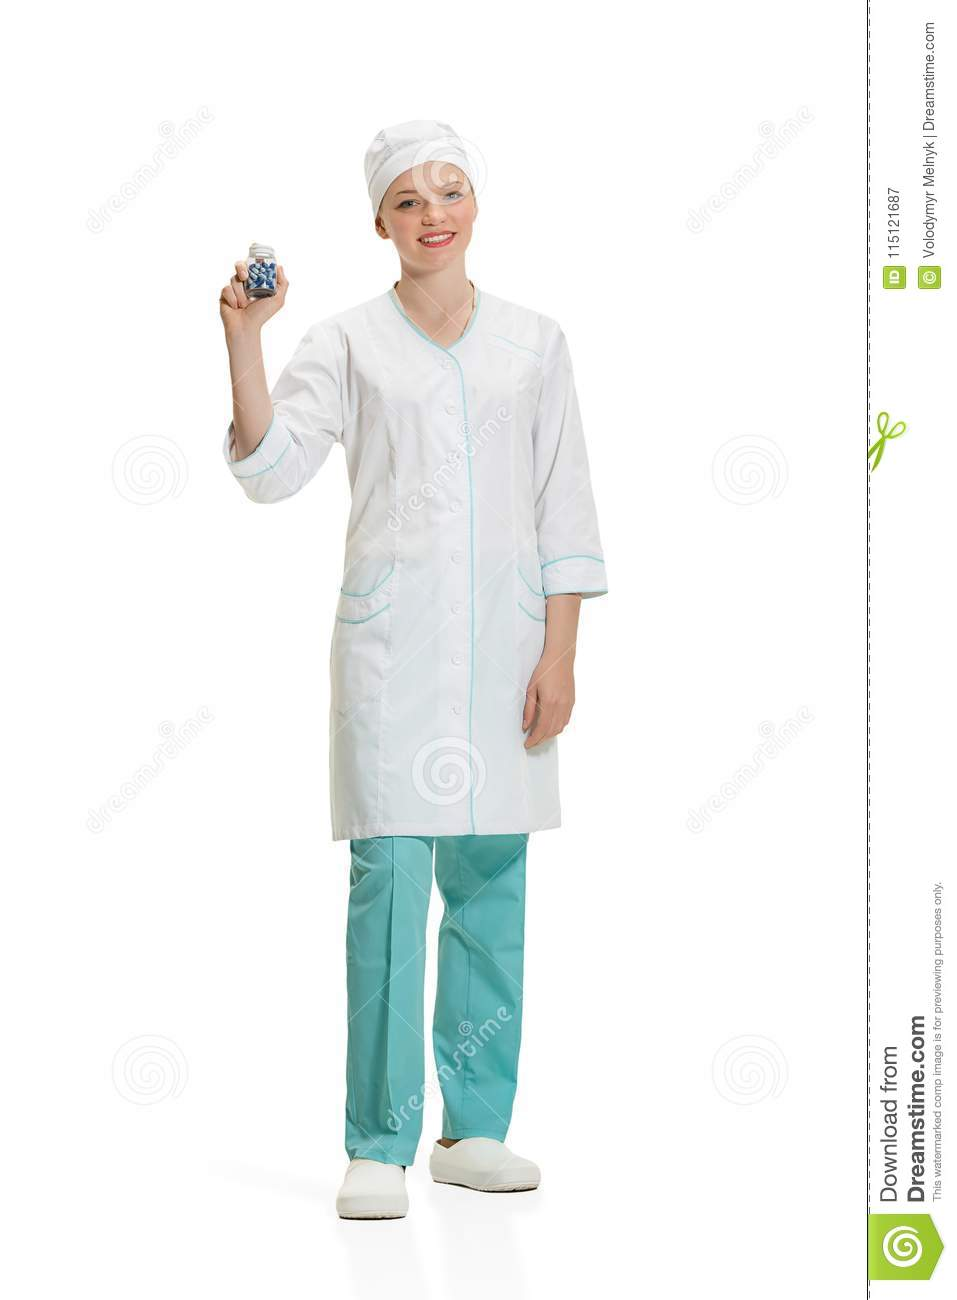 Beautiful young woman in white coat posing at studio. Full length studio shot isolated on white.